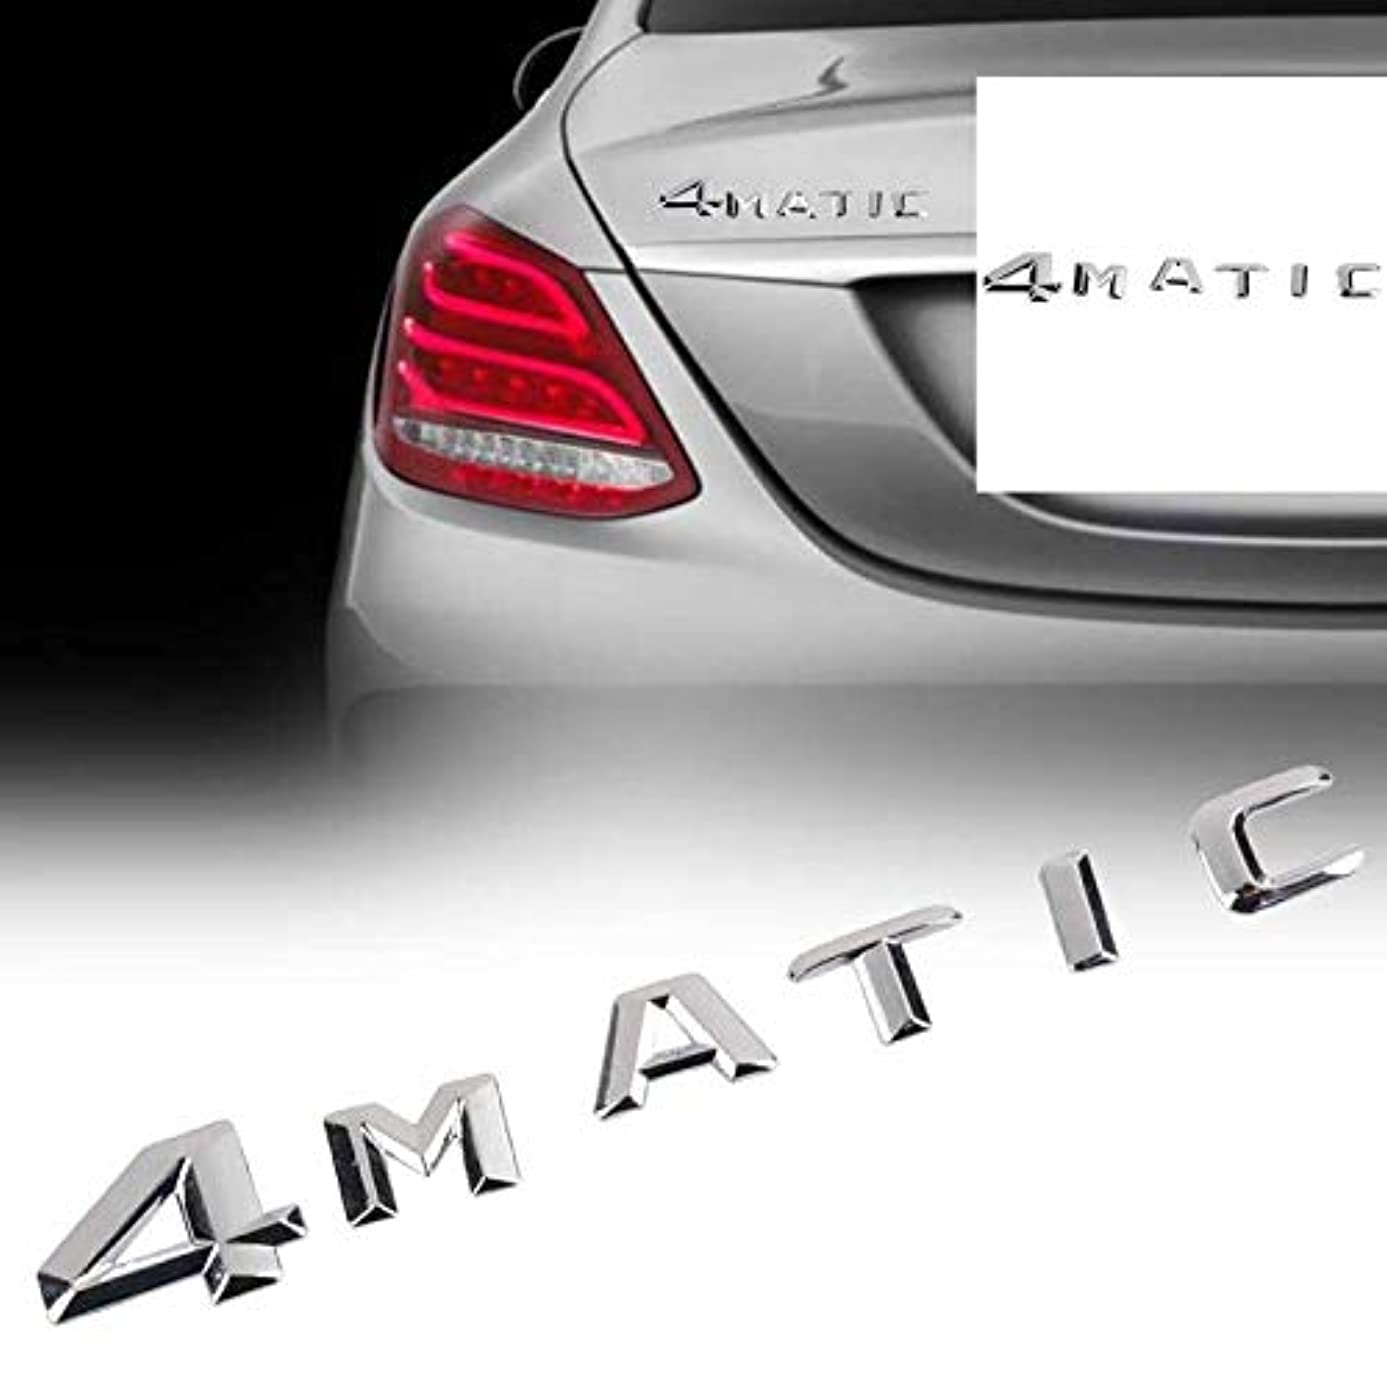 Chrome 4MATIC 4 MATIC Logo Emblem Badge Car Rear Trunk Lid Decal Stickers for Mercedes Benz ABS